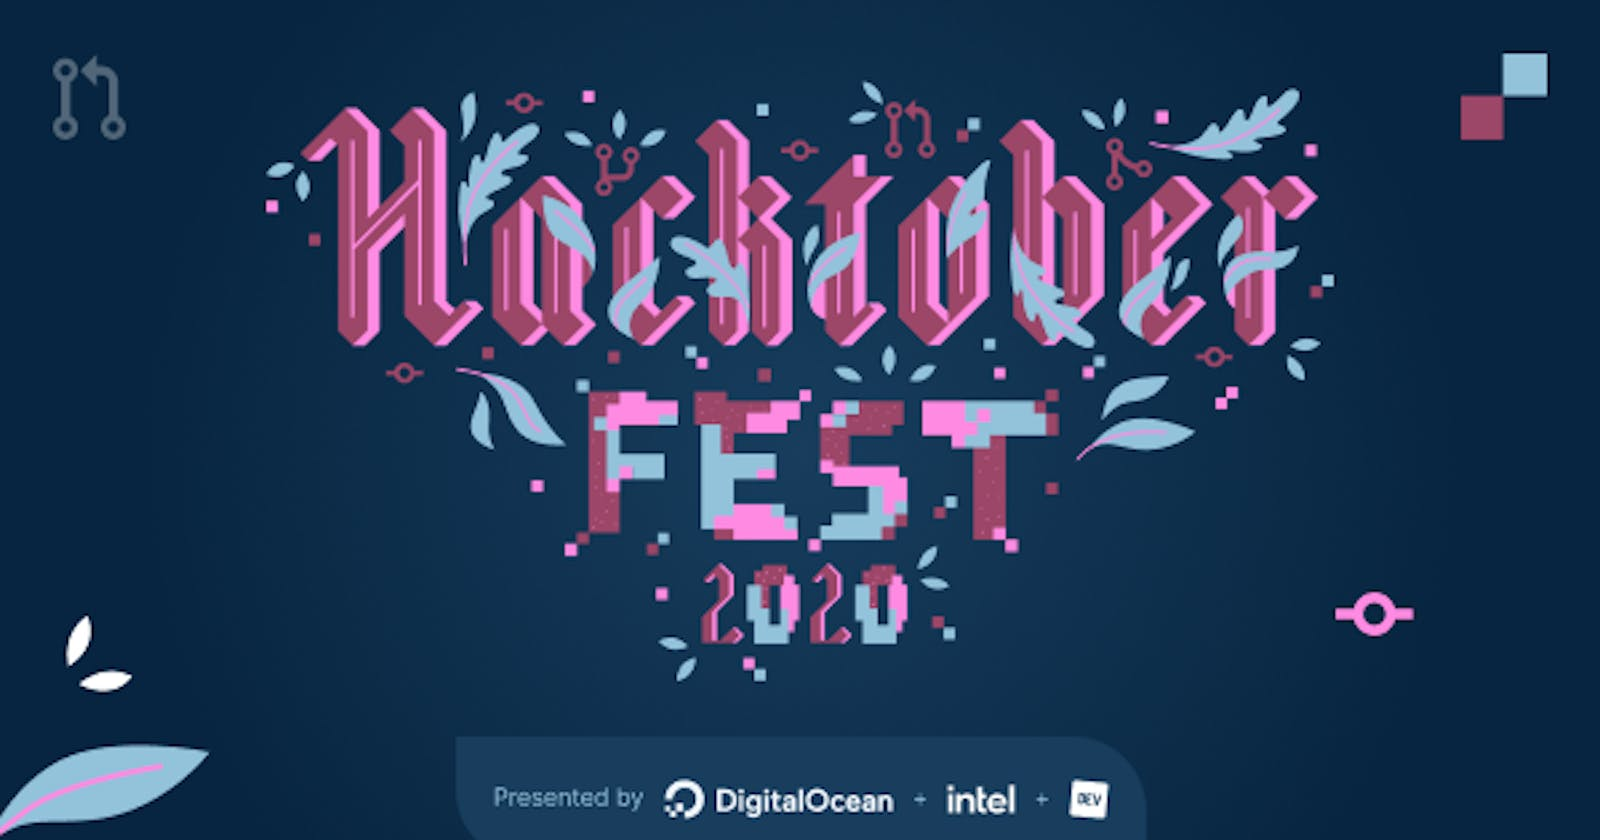 What I Learned from Hacktoberfest 2020